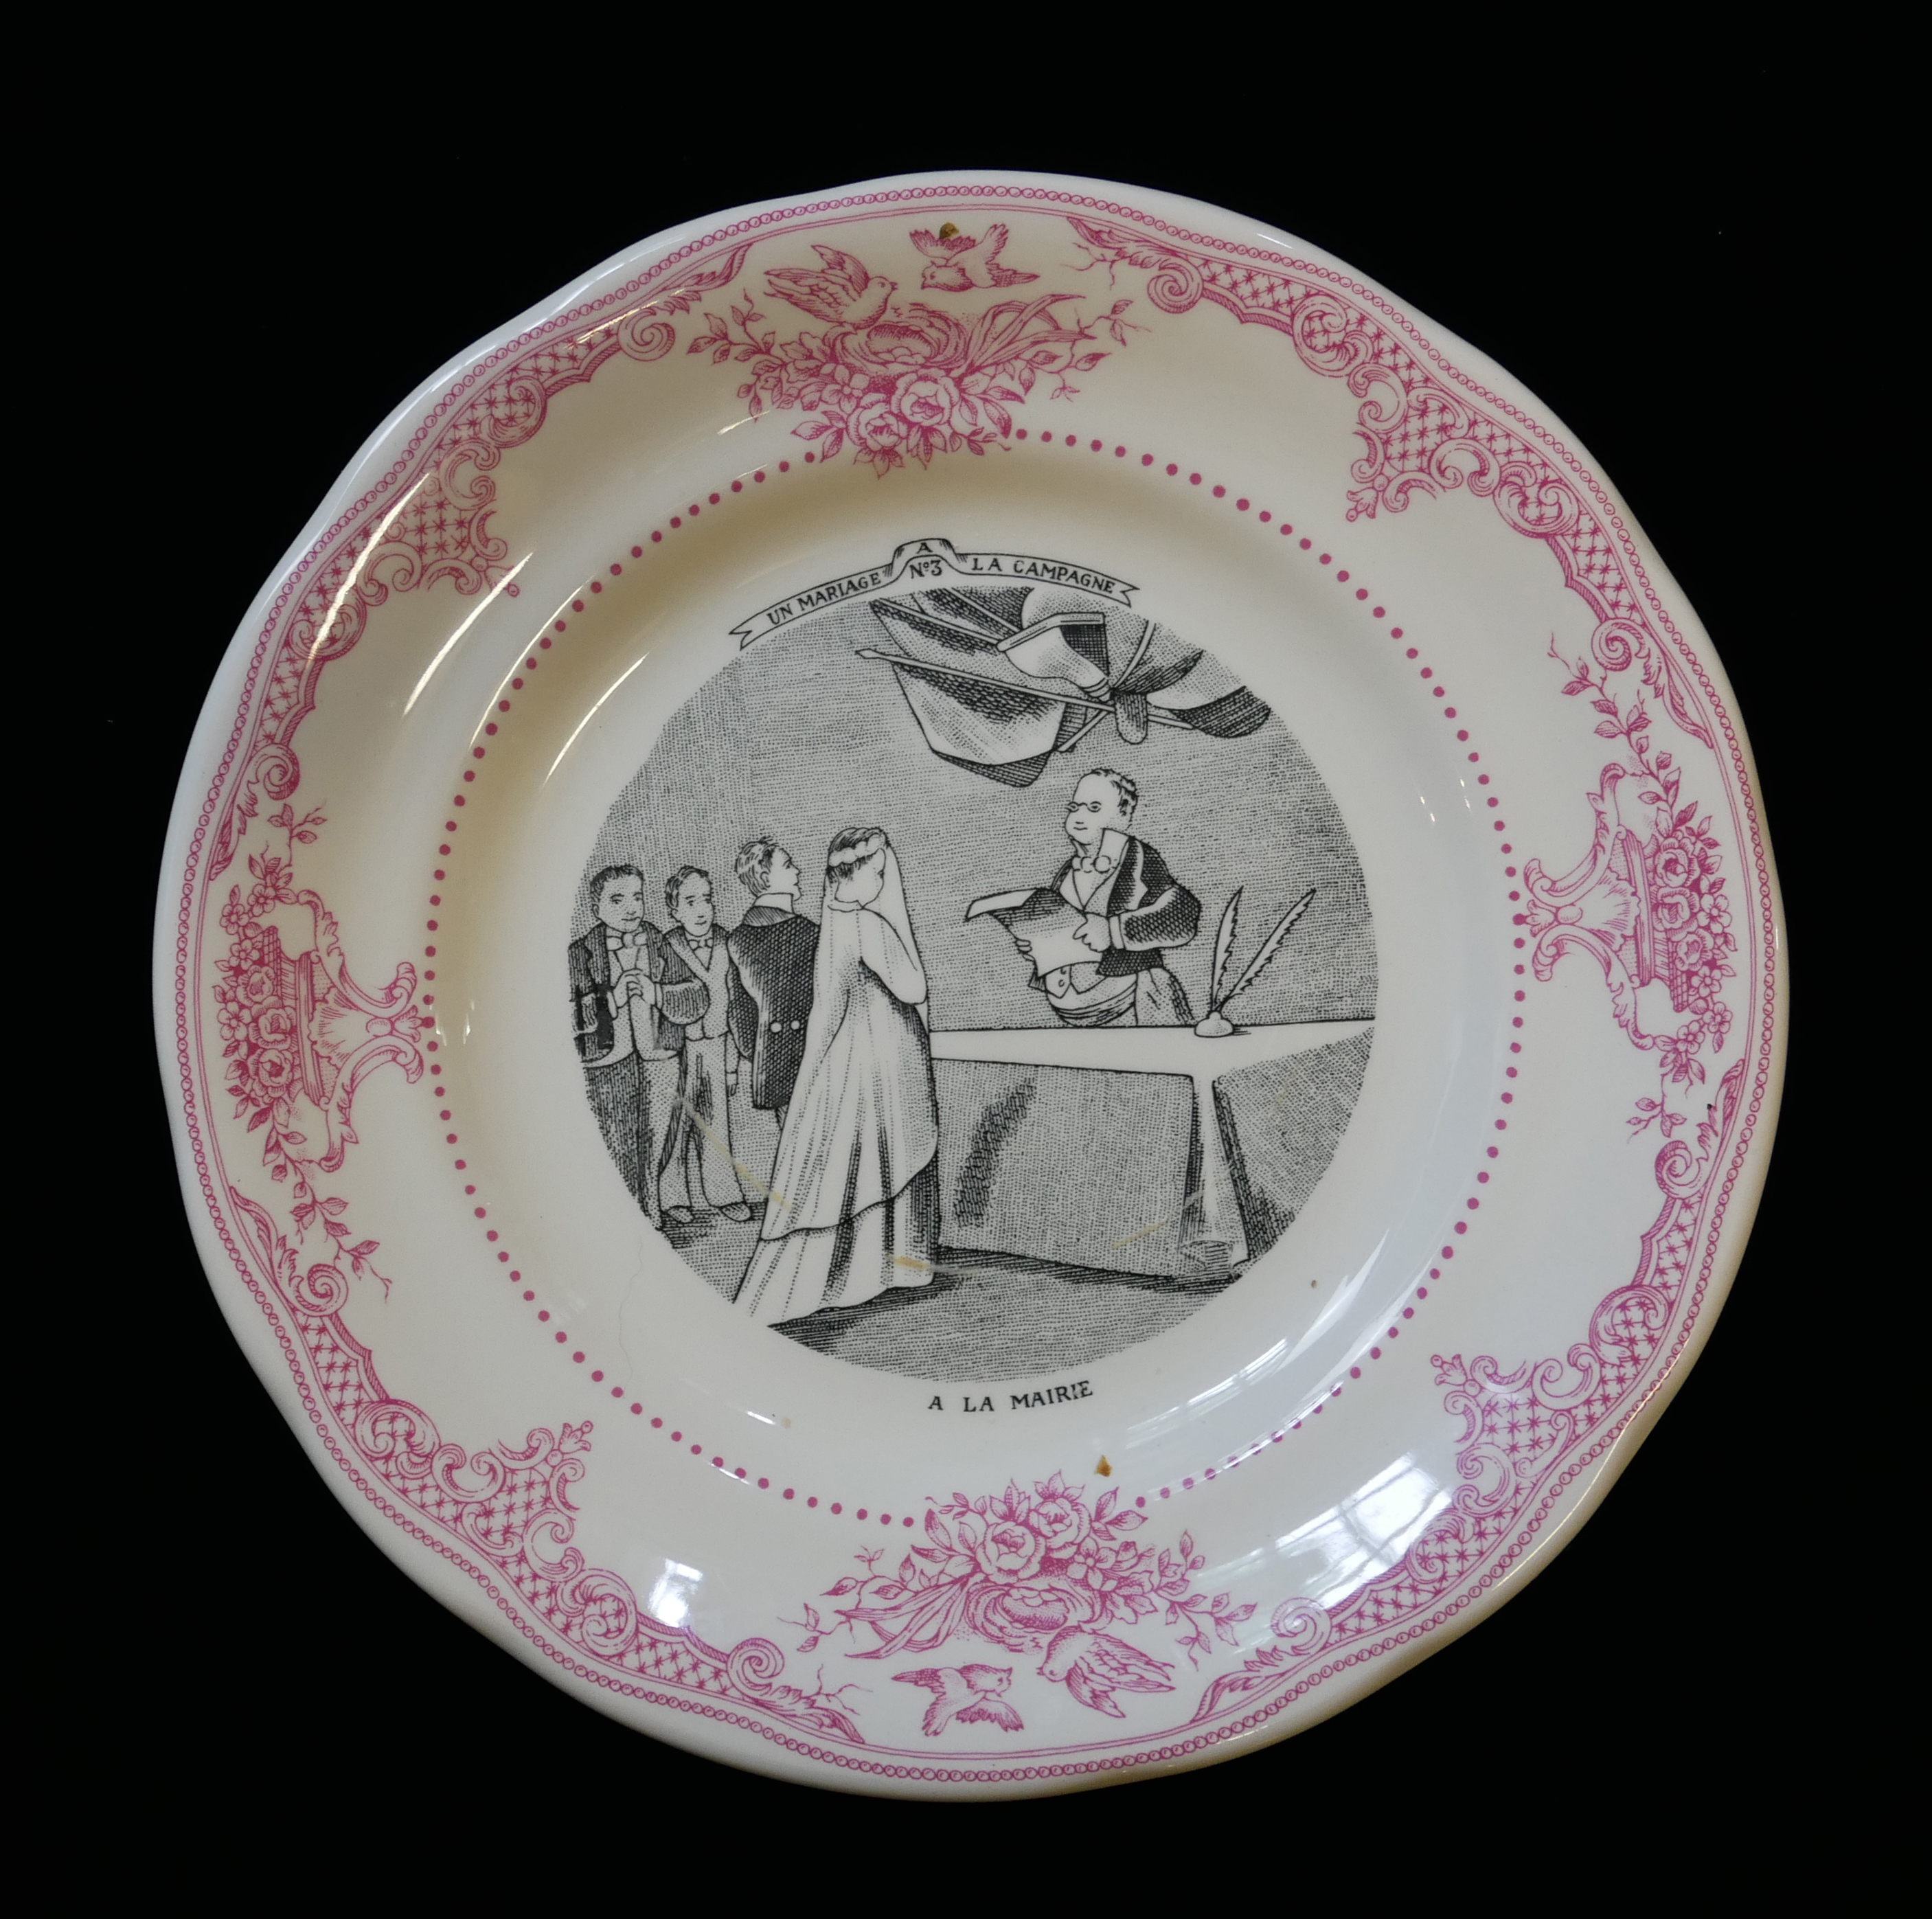 GIEN FACTORY, MARRIAGE À LA CAMPAGNE ROMANTIC PATTERN, A SET OF SIX MODERN FRENCH FAIENCE PLATES - Image 2 of 3